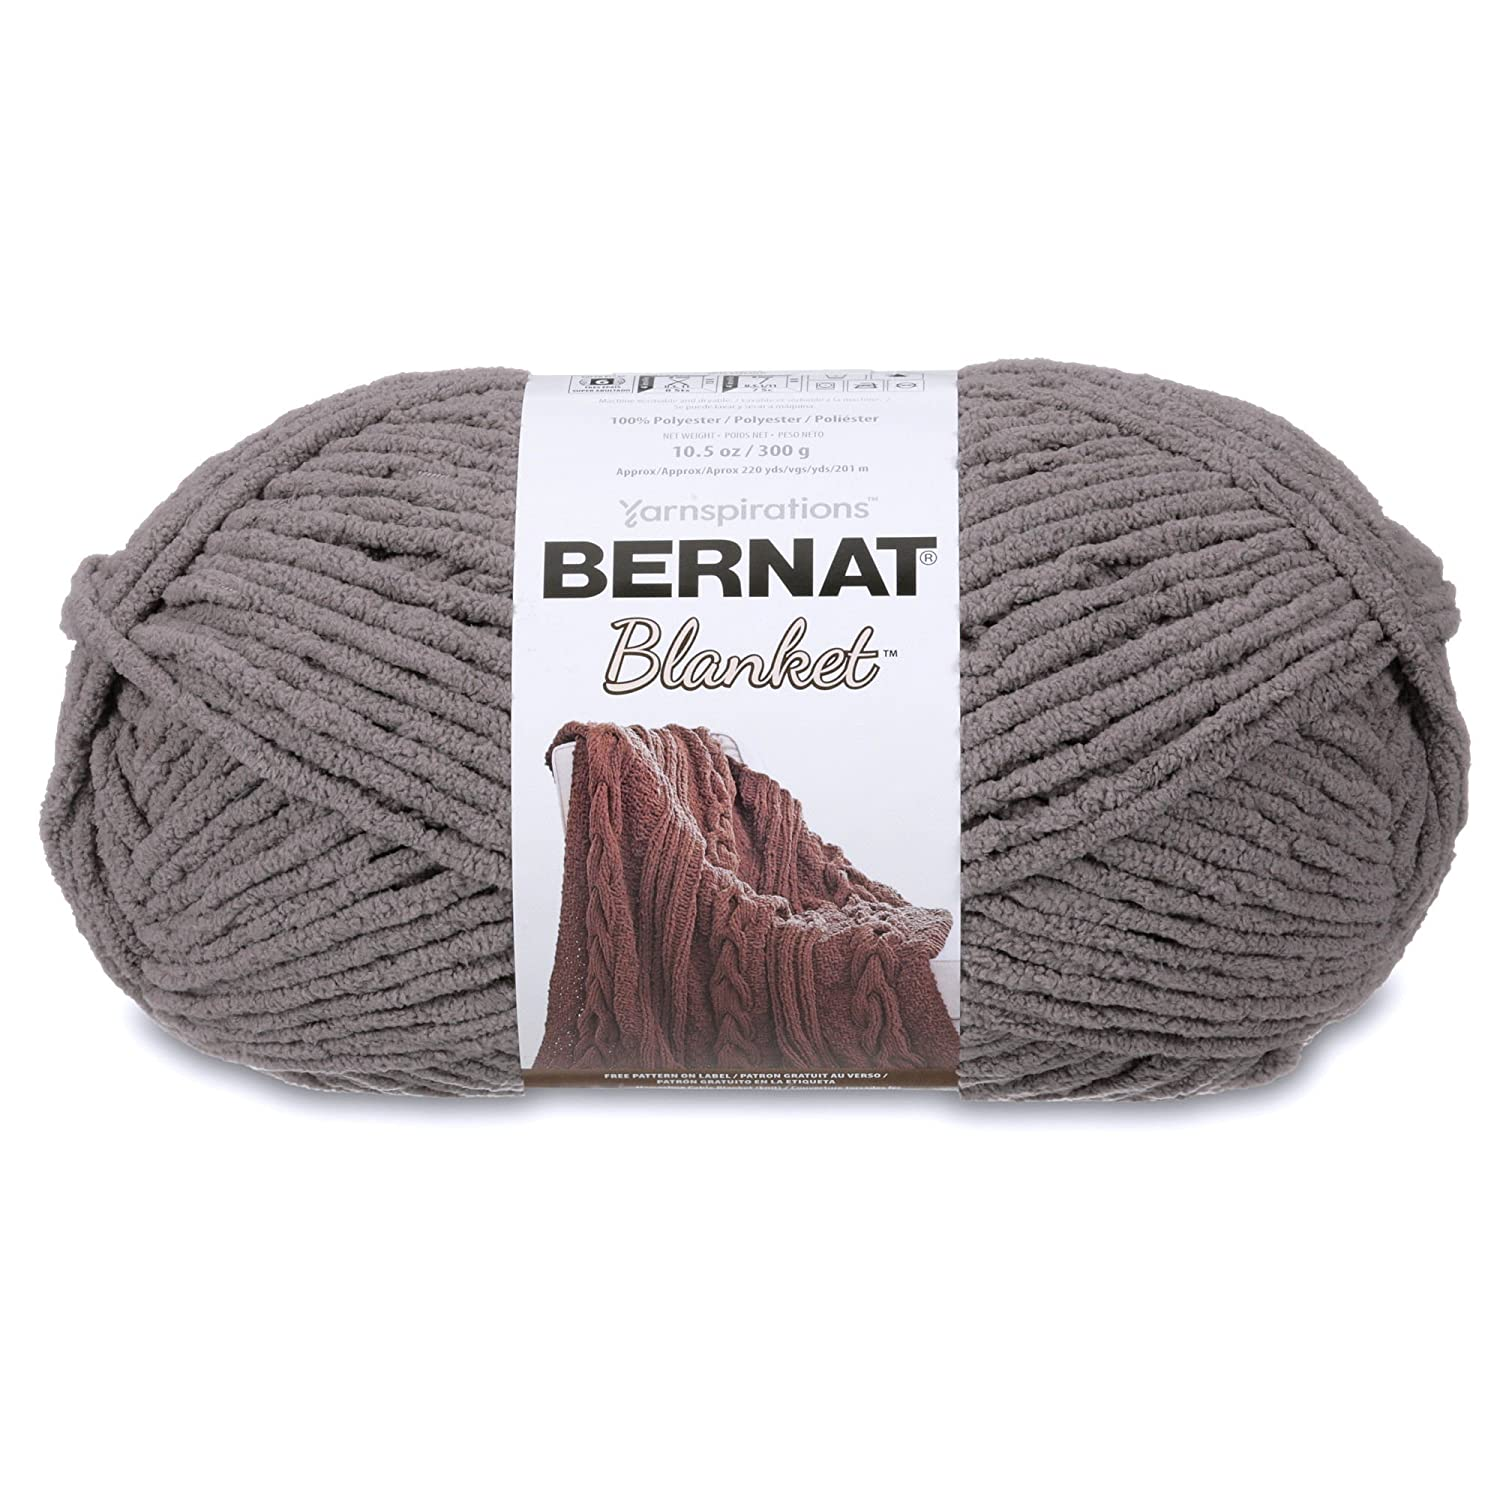 Bernat Blanket Yarn, Dark Grey